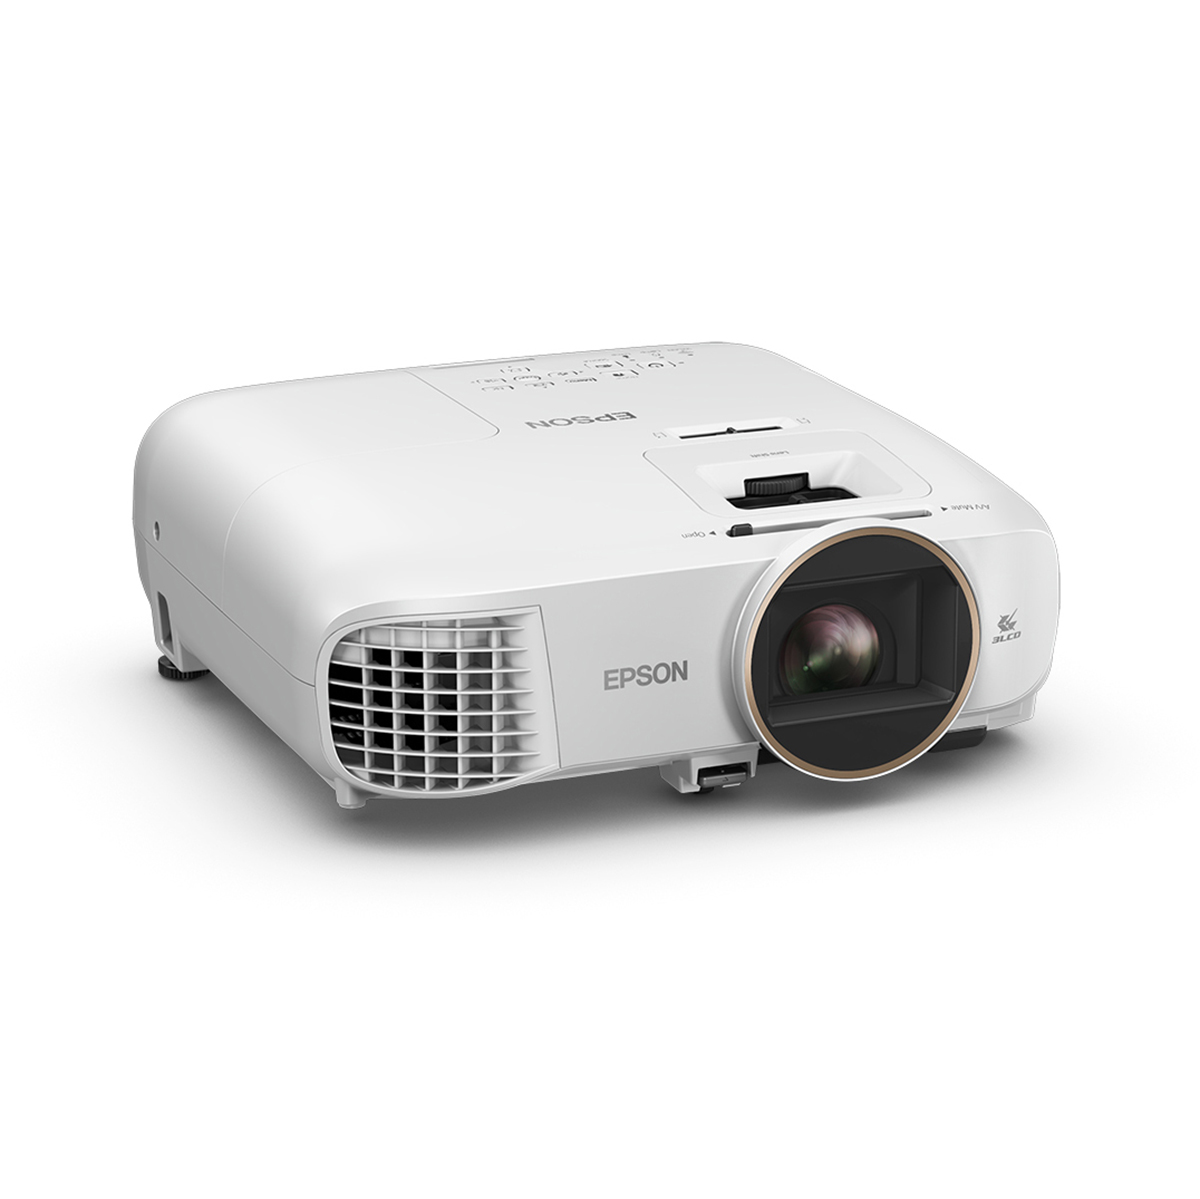 Epson EH-TW5650 3LCD Home Cinema Projector